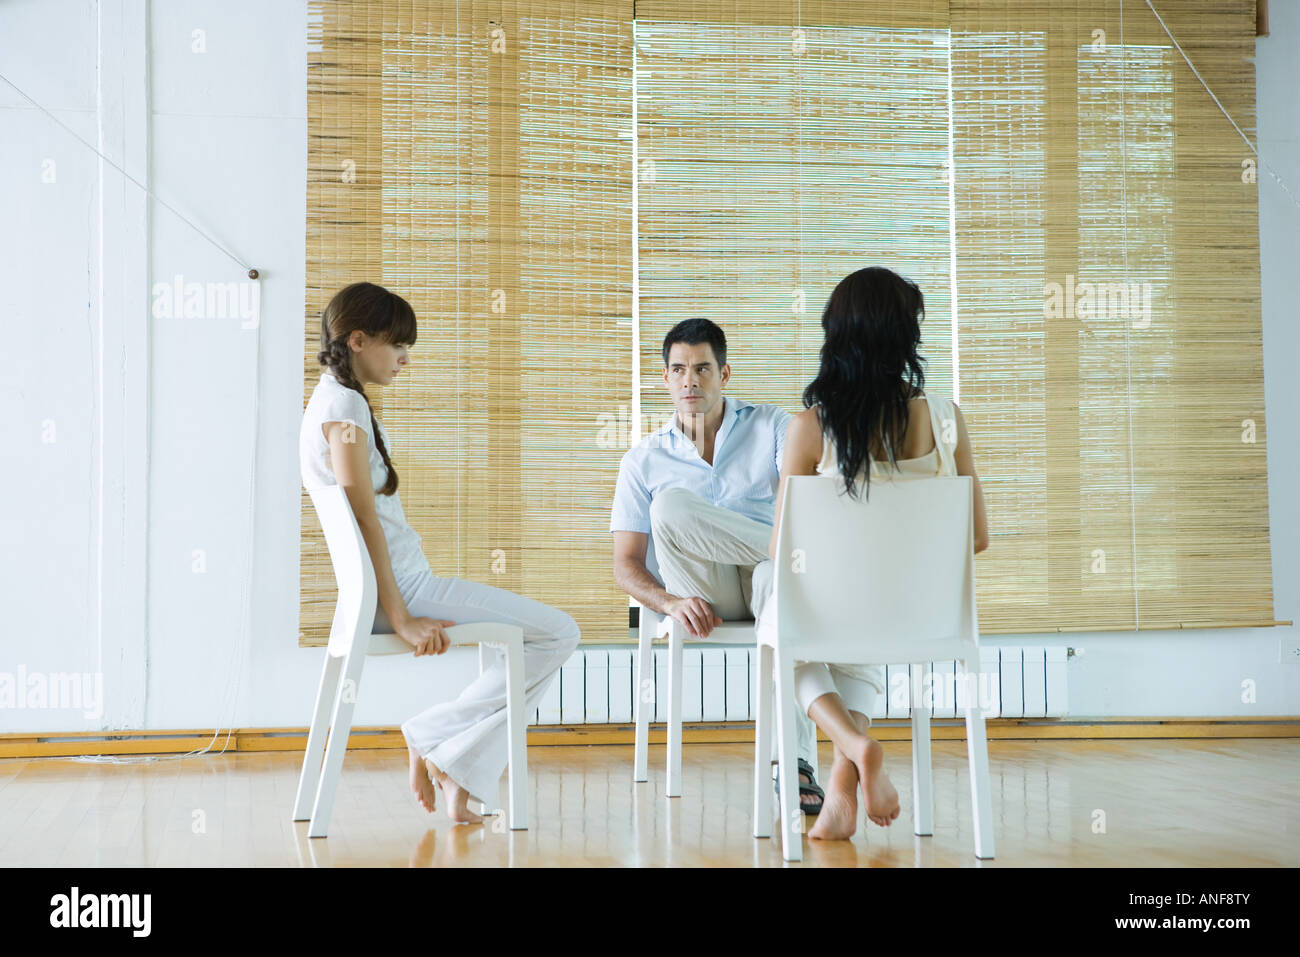 Three adults sitting in chairs, having therapy session, looking serious - Stock Image